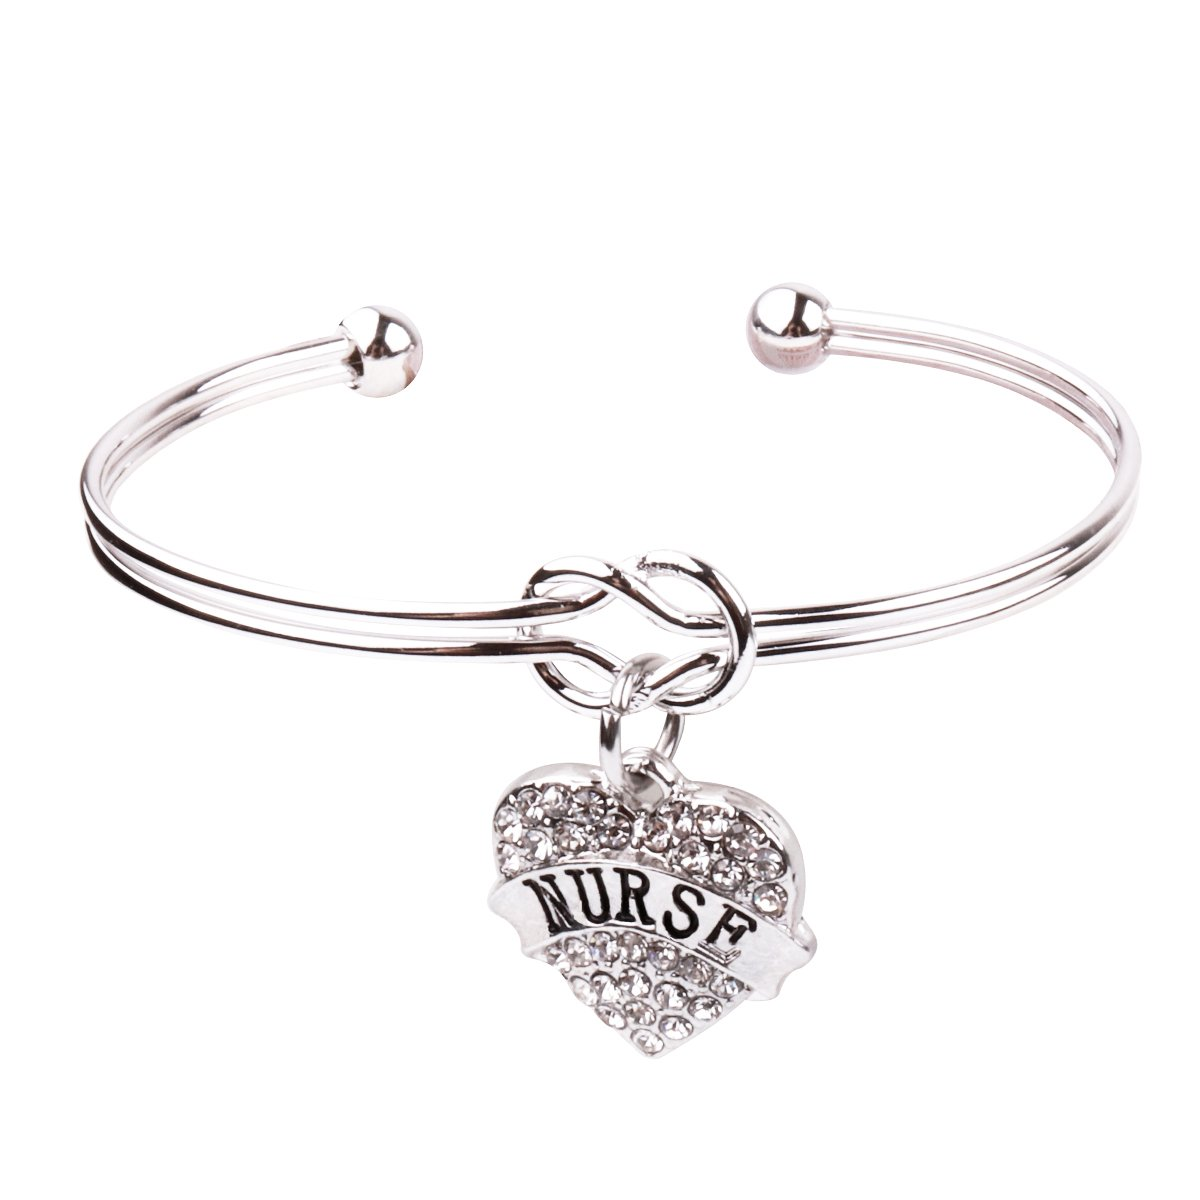 REEBOOO Nurse charm  Nurse Gift  Love Knot Cuff Bangle Bracelet Inspirational  Jewelry Gift for Her (Silver-NURSE)